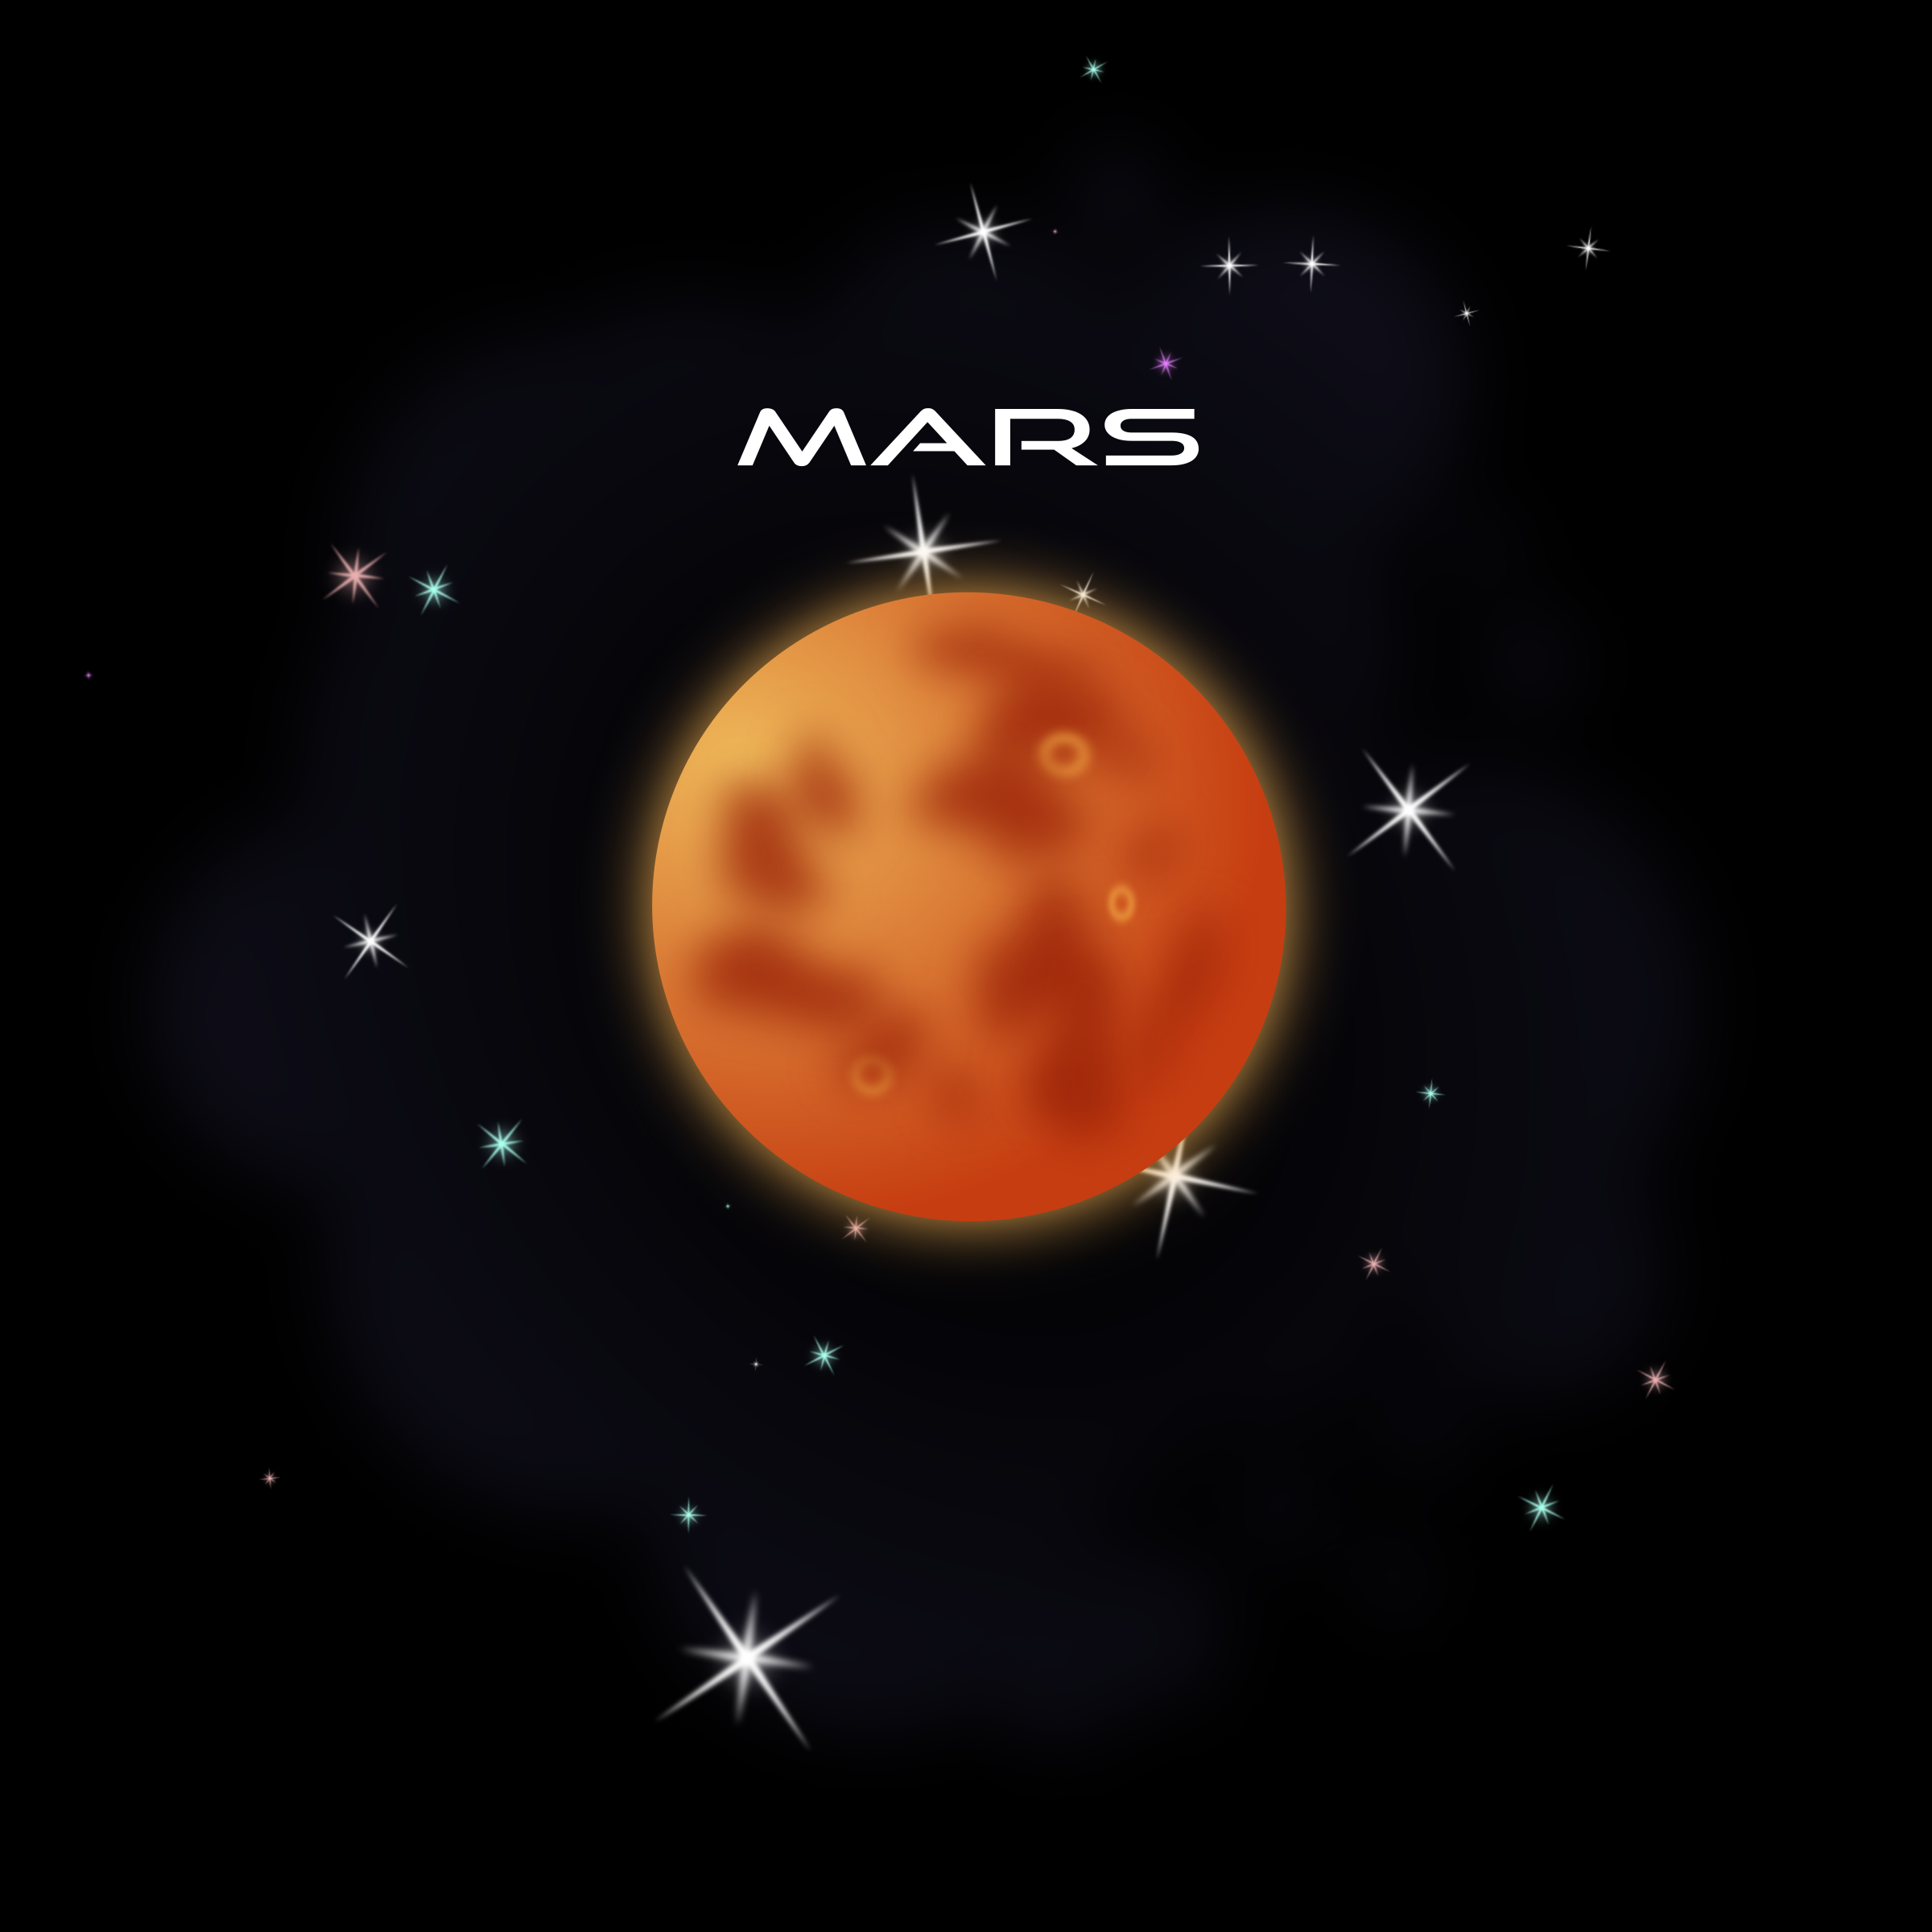 Mars by gnokii